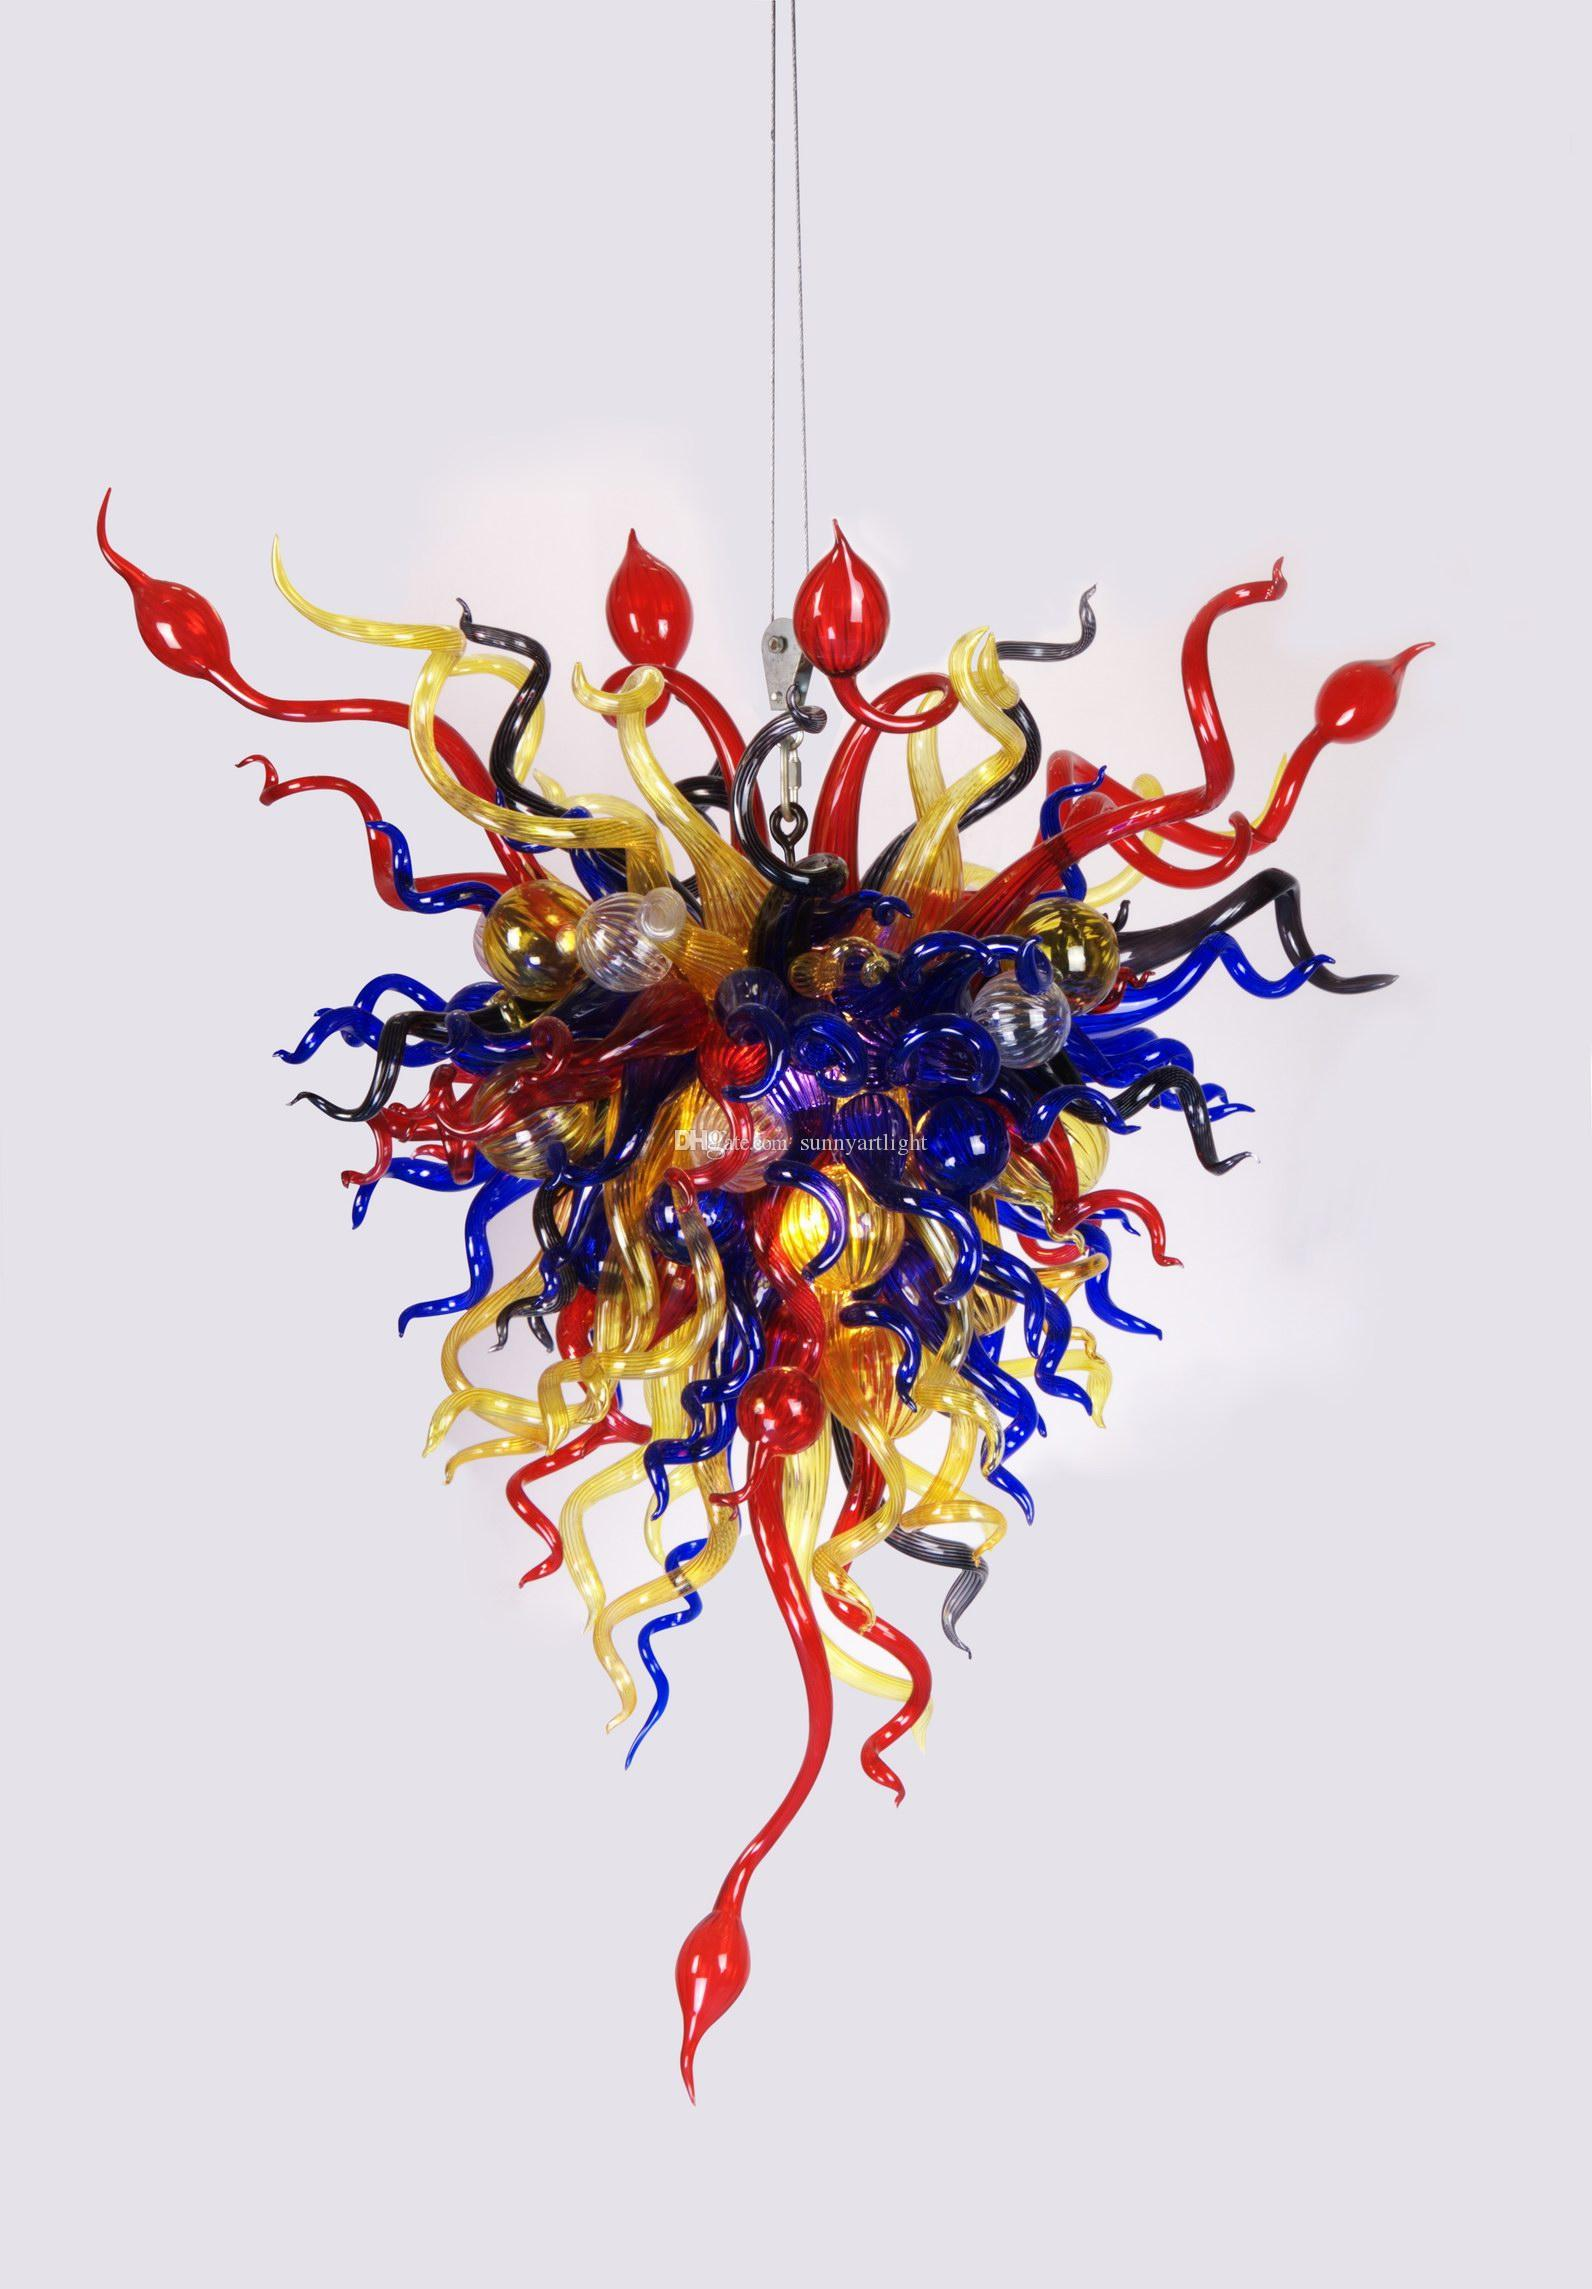 Handicrafts Dining Chandelier Lighting 110-240v AC LED Customized Style New Restaurant Lamp Multi Colored Glass Pipes